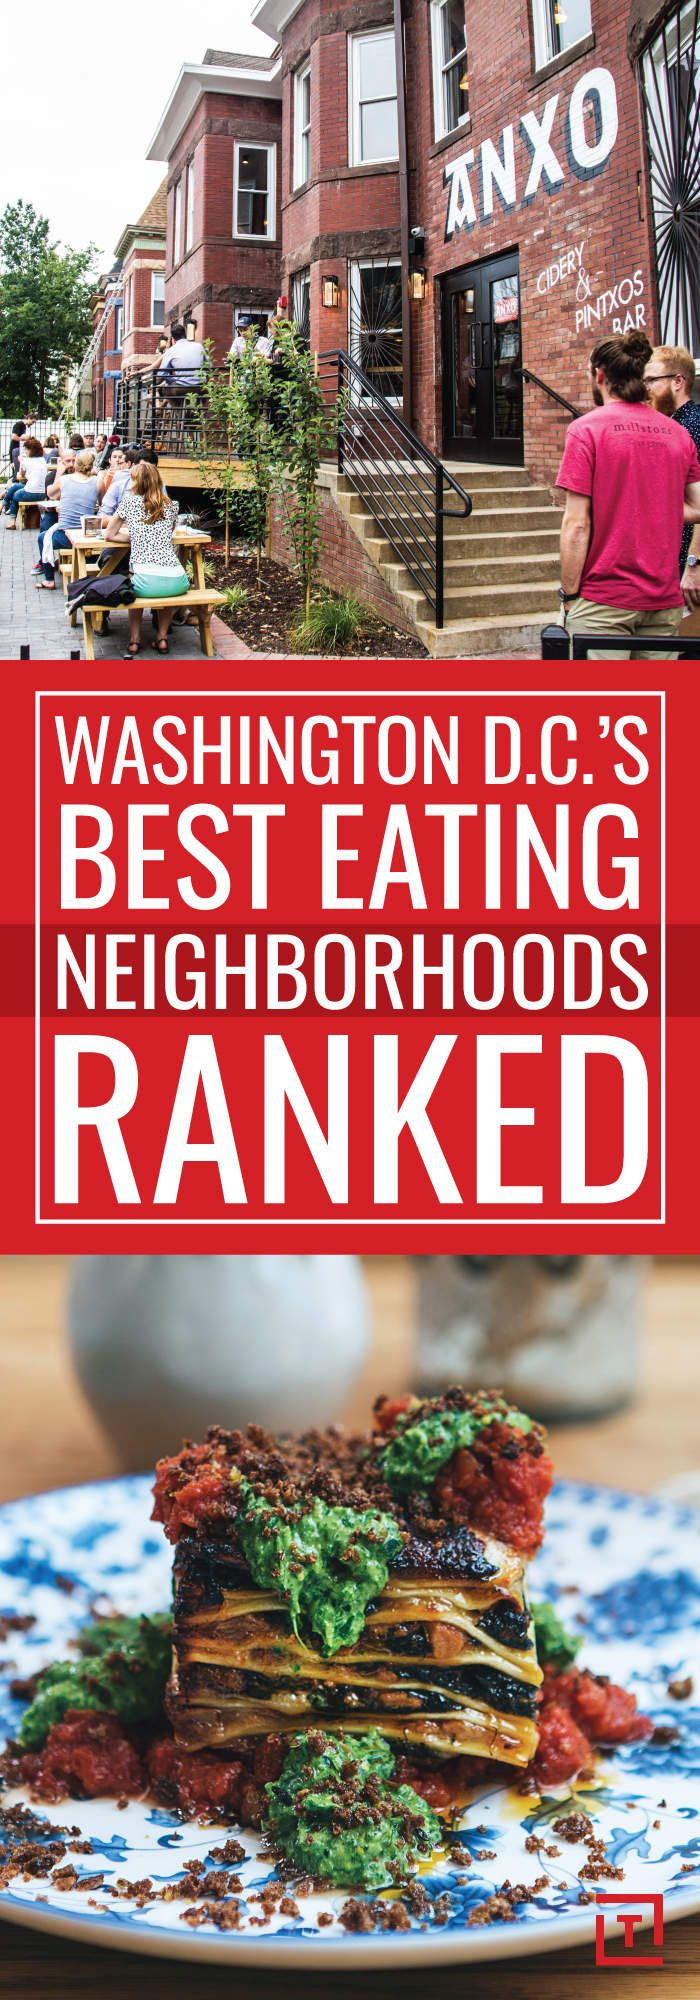 Best Neighborhoods in Washington, DC for Dining and Eating Out, Ranked - Thrillist